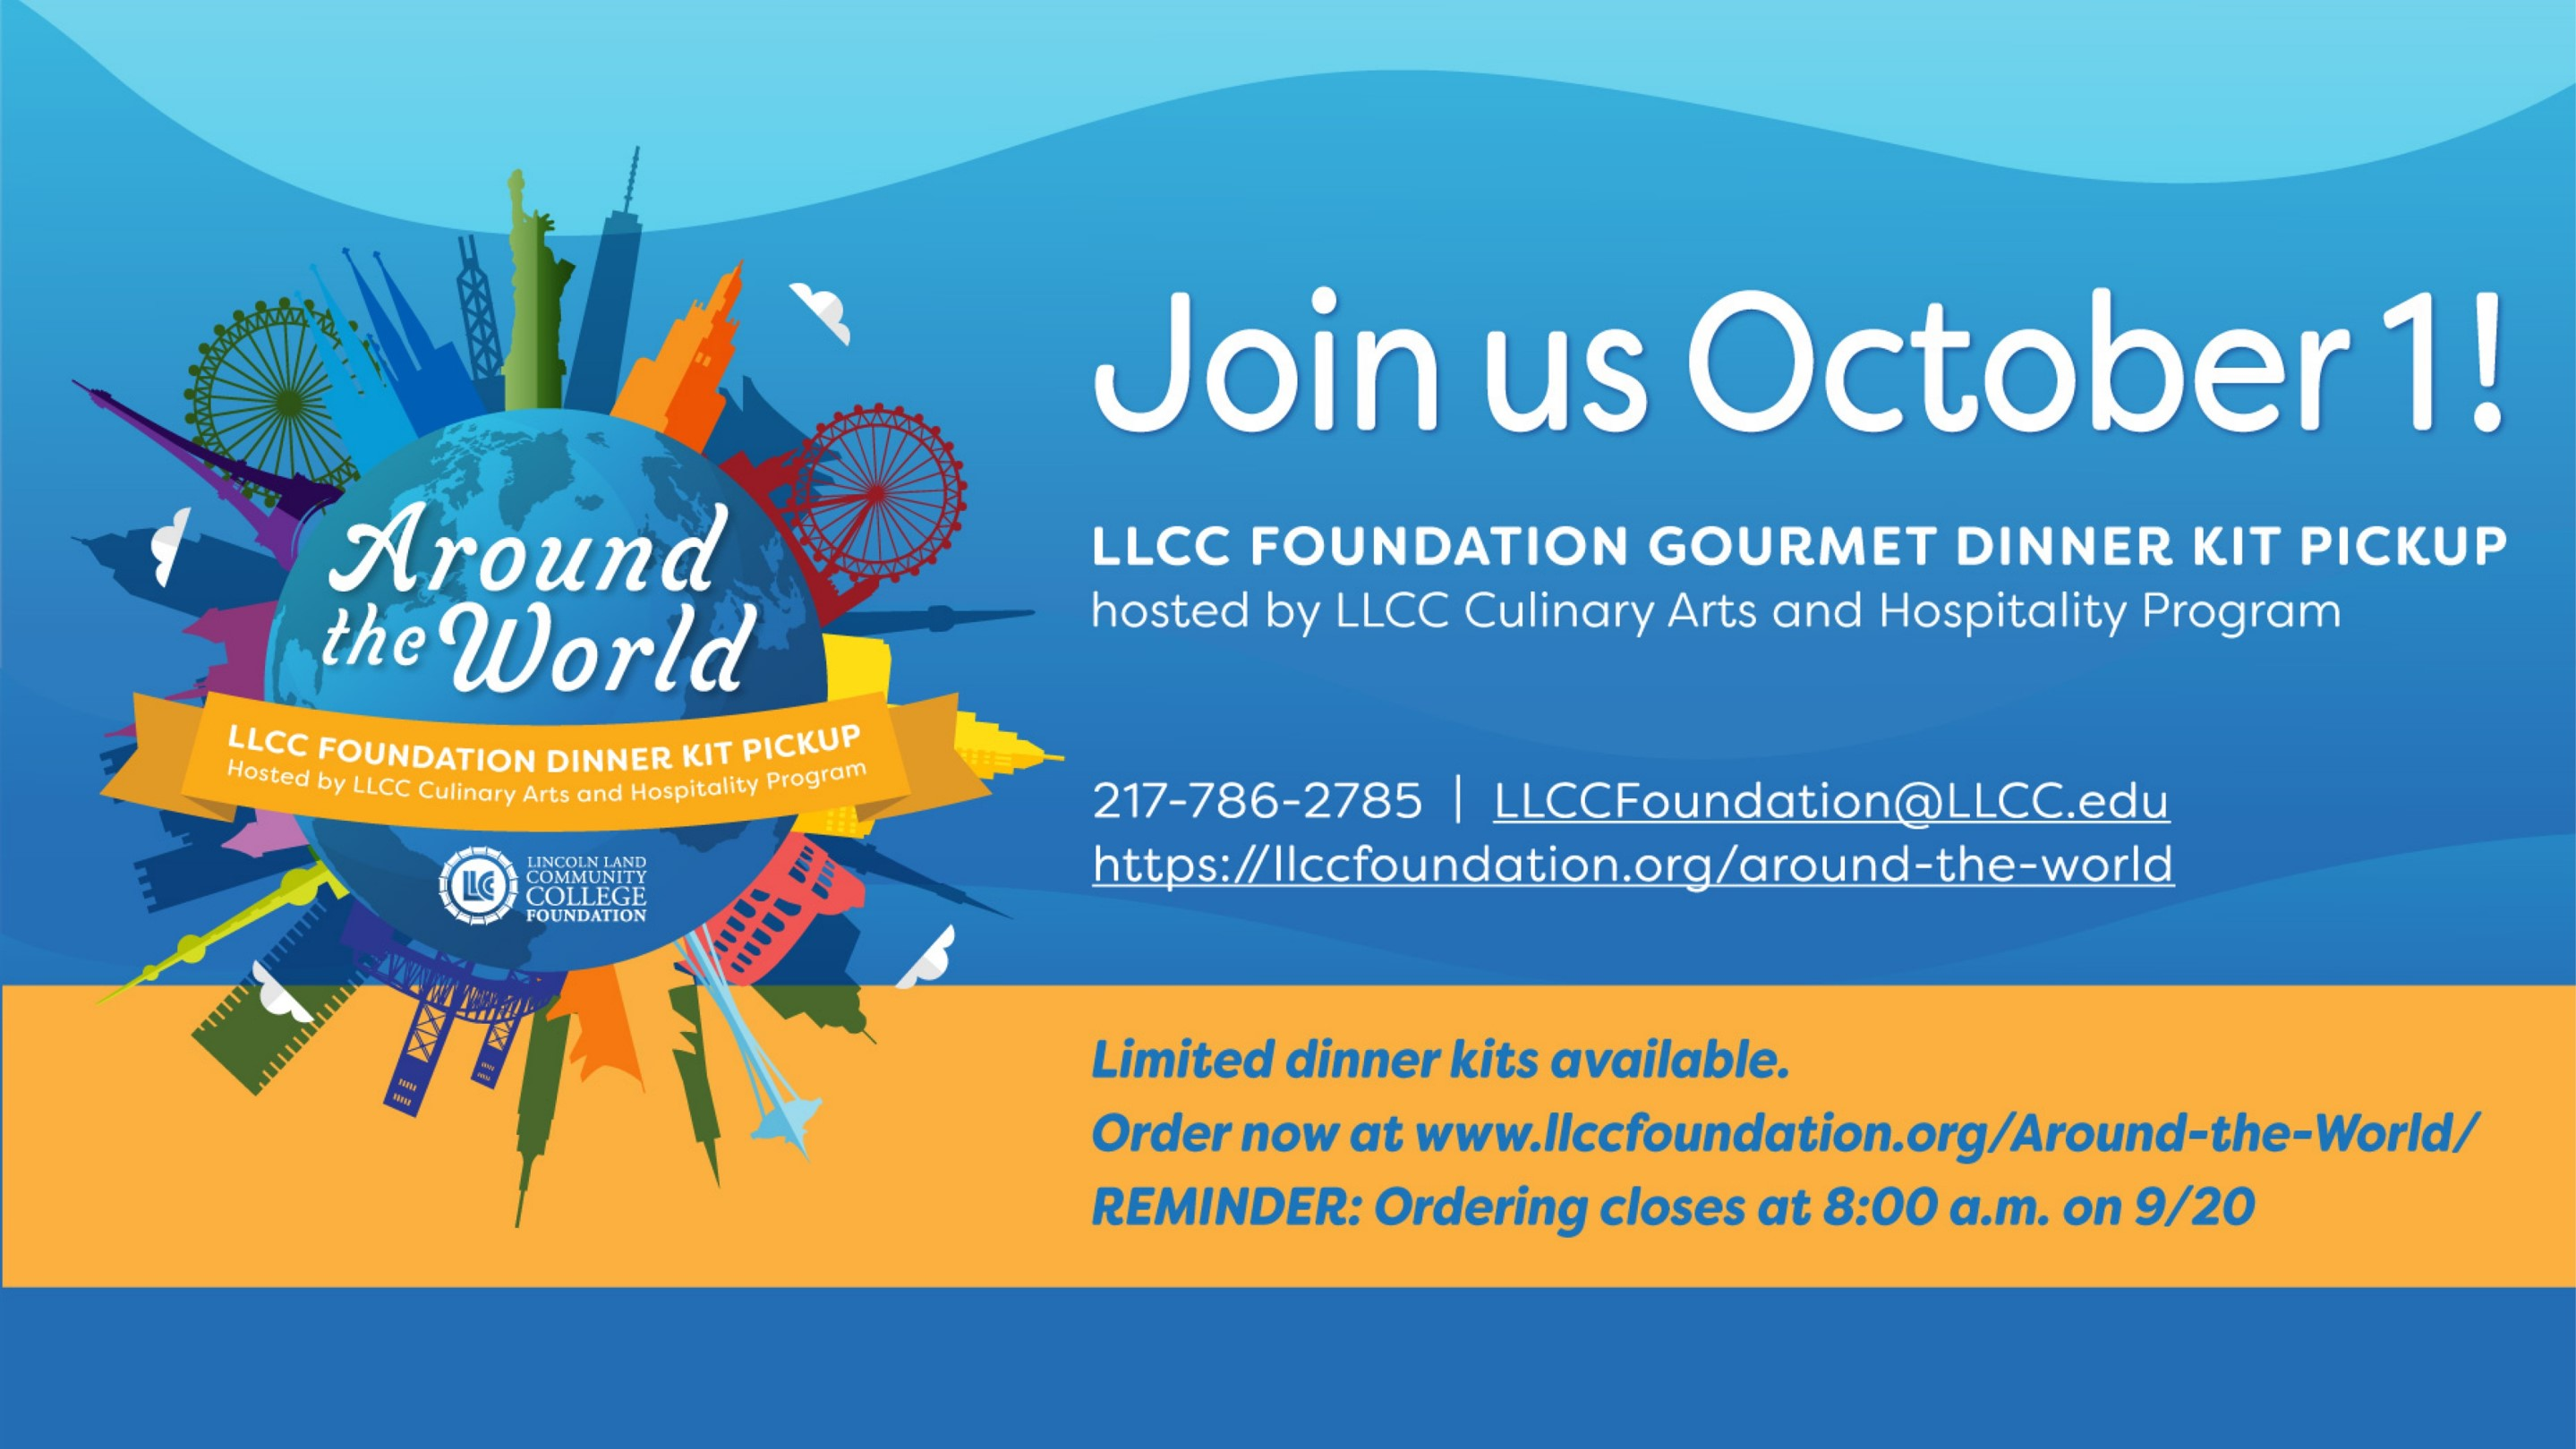 Around the World LLCC Foundation Dinner Kit Pickup hosted by LLCC Culinary Arts and Hospitality Program. Join us October 1! 217-786-2785. LLCCFoundation@llcc.edu. https://llccfoundation.org/around-the-world. Limited dinner kits available. Order now at www..llccfoundation/org/Around-the-World/. Reminder: Ordering closes at 8:00 a.m. on 9/20.LLCC Lincoln Land Community College Foundation.